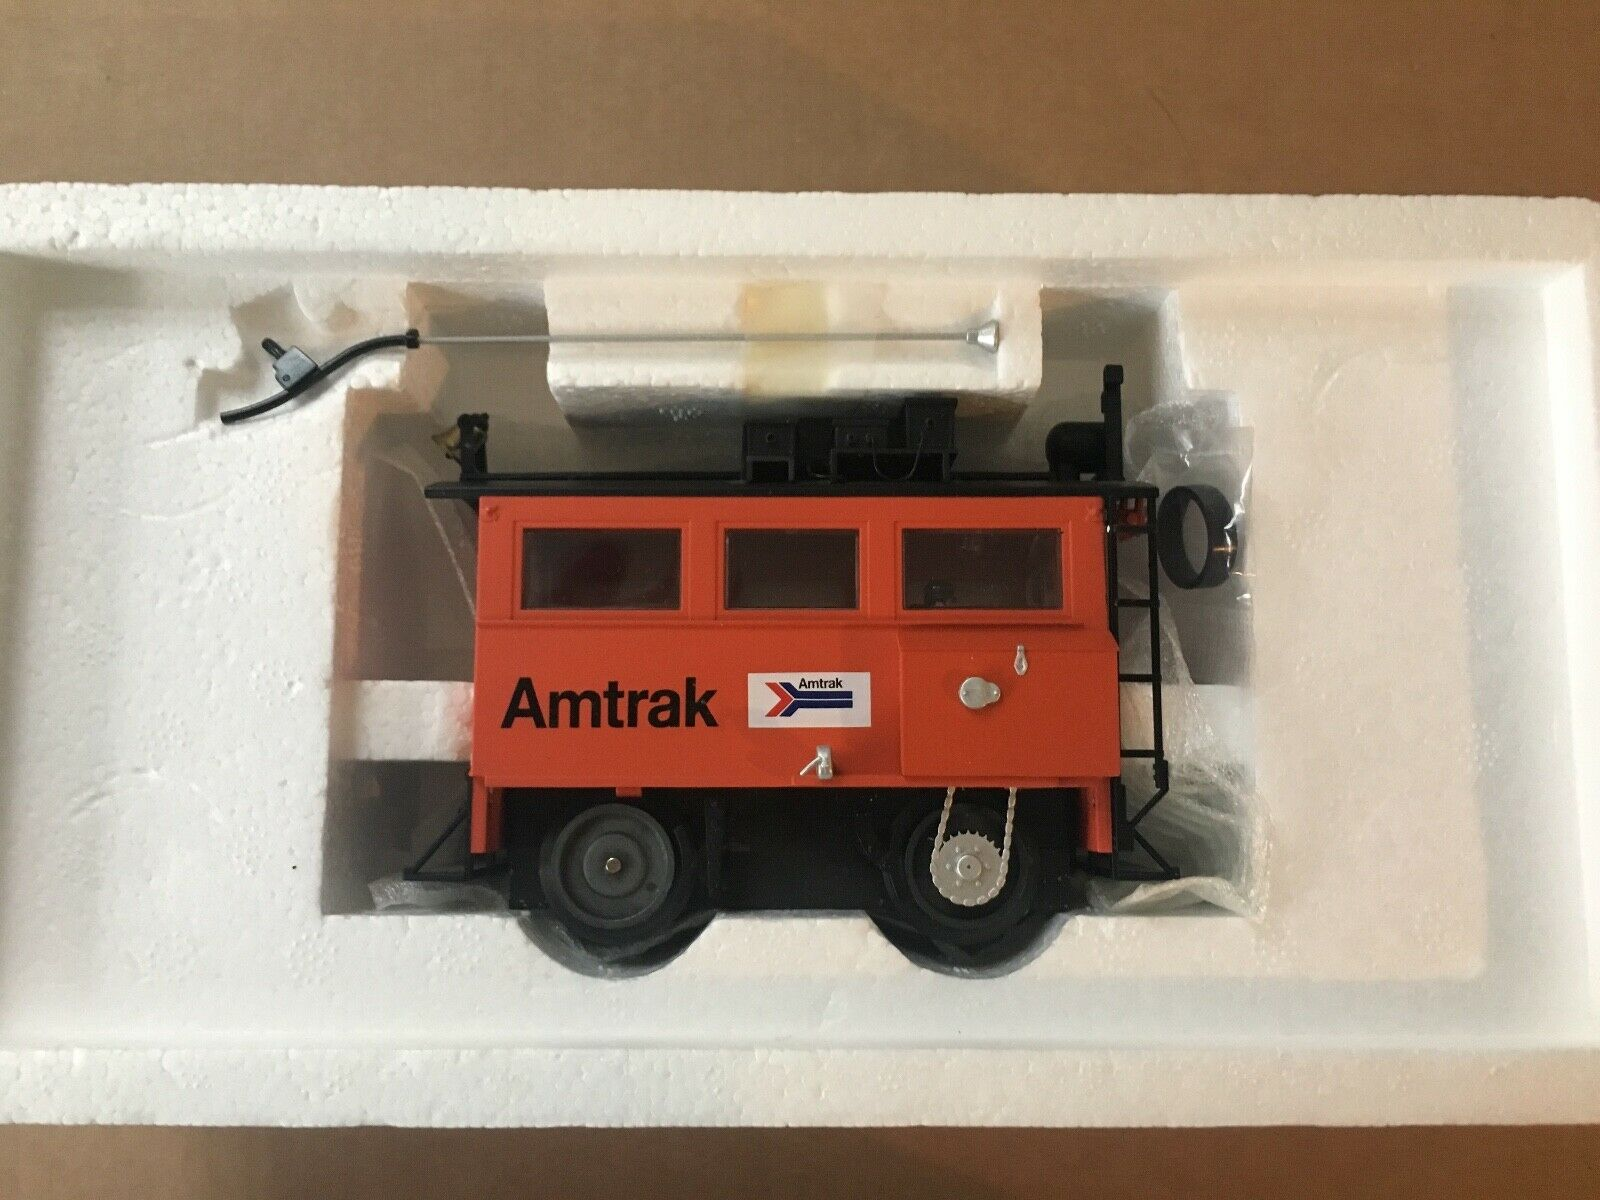 Lionel 628400 Amtrak Rail Bonder